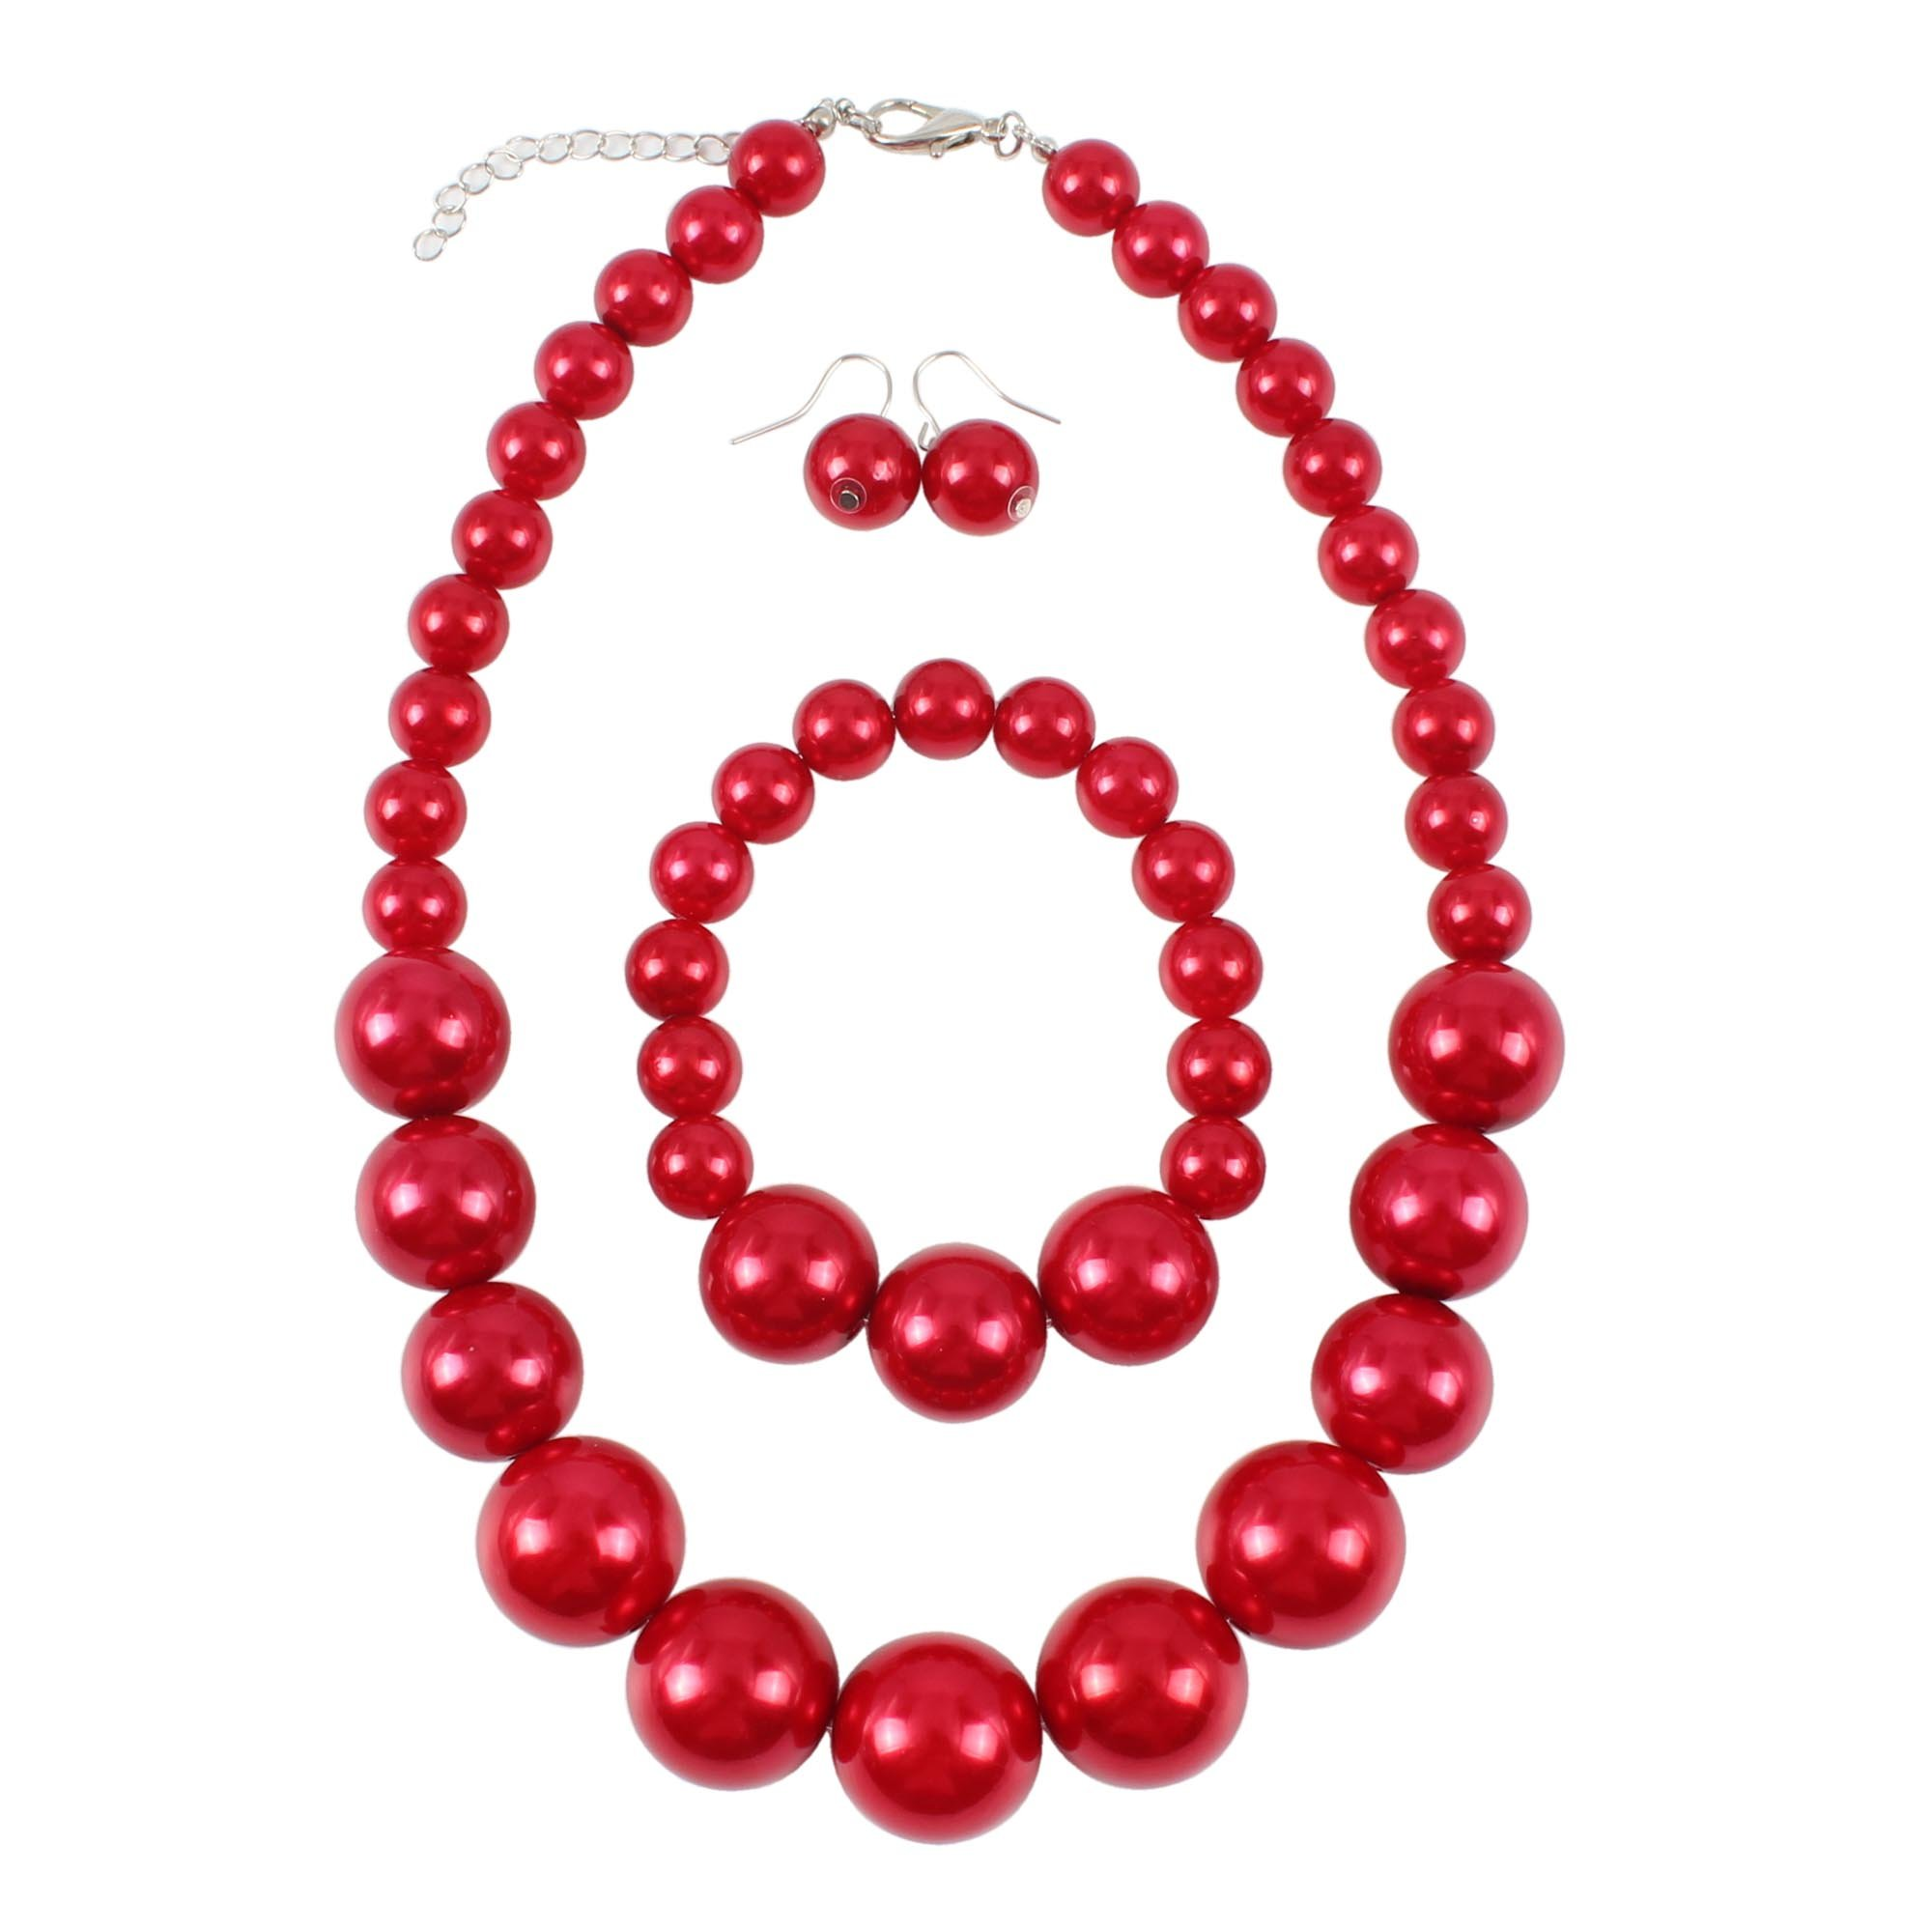 Shineland Simple Large Big Simulated Pearl Statement Necklace Bracelet and Earrings Jewelry Set (Red) by Unknown